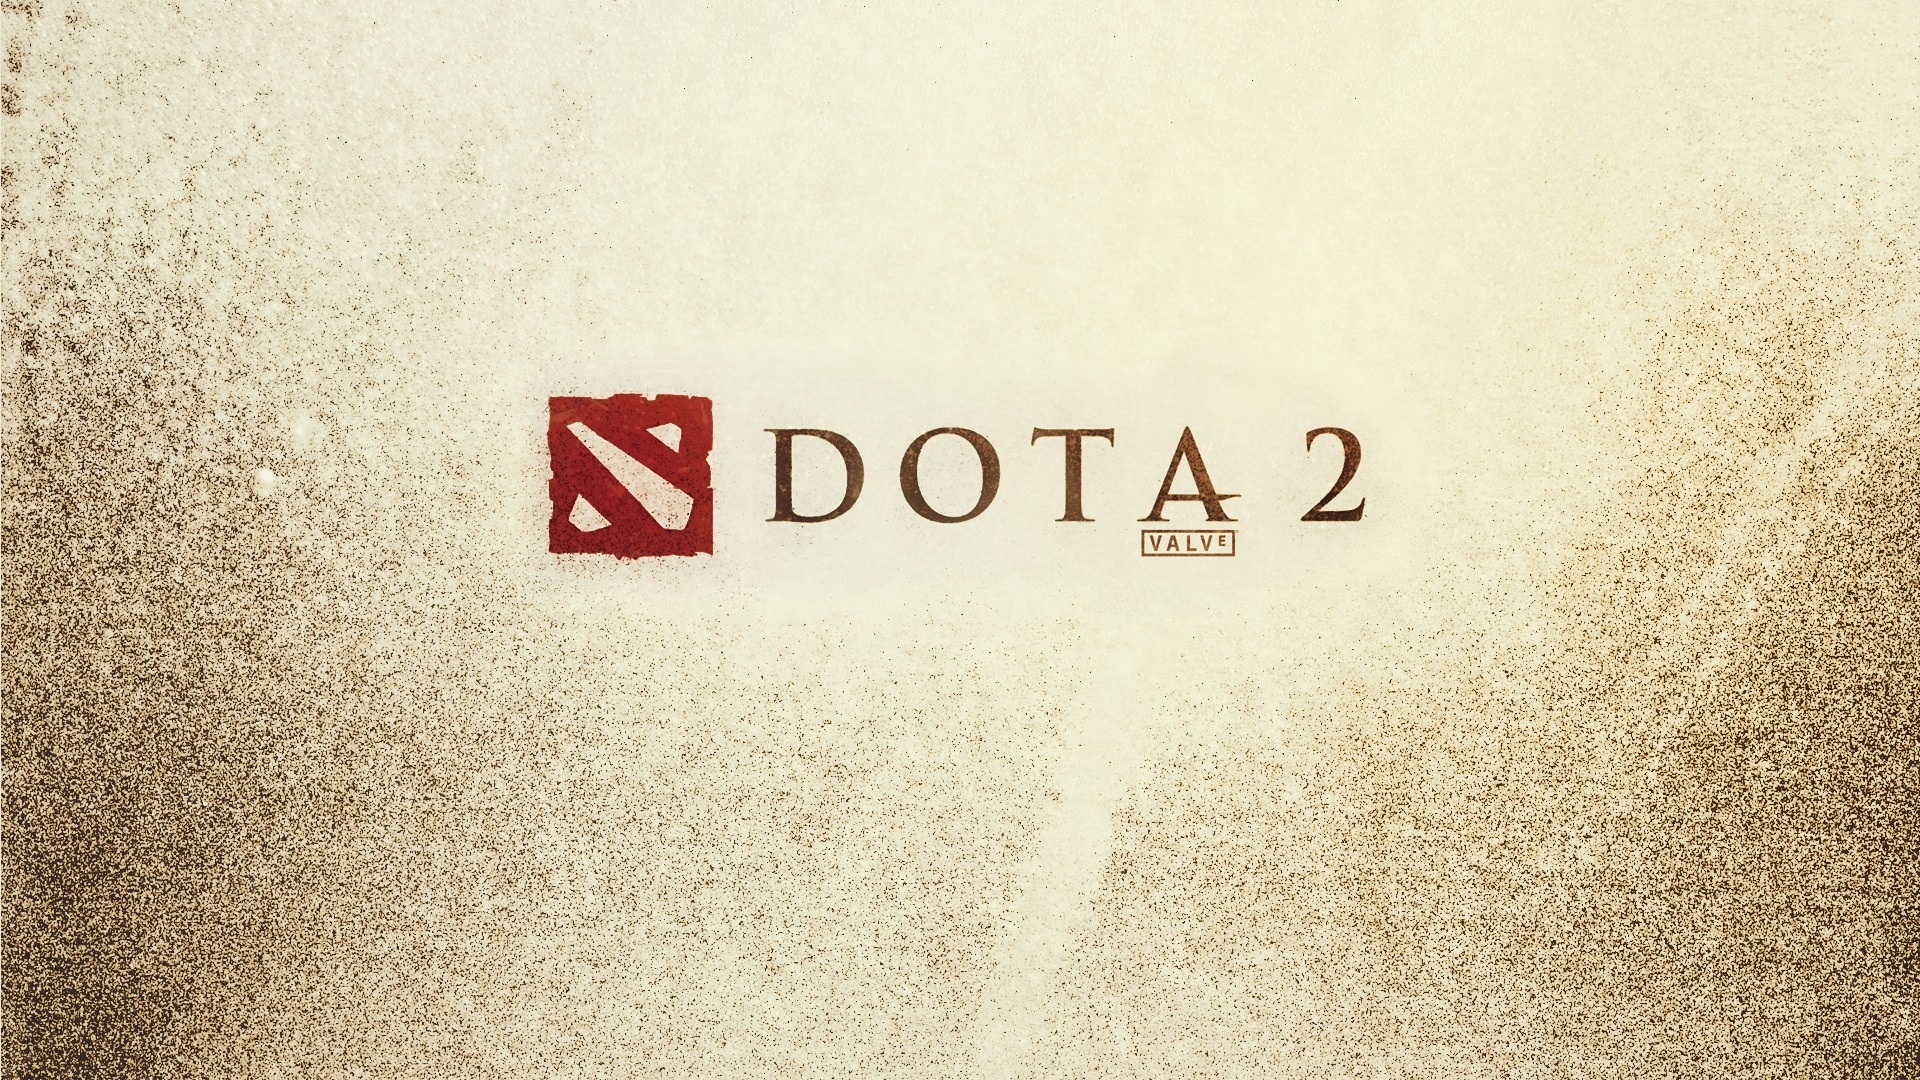 Dota 2 game background 1920 x 1080 download close